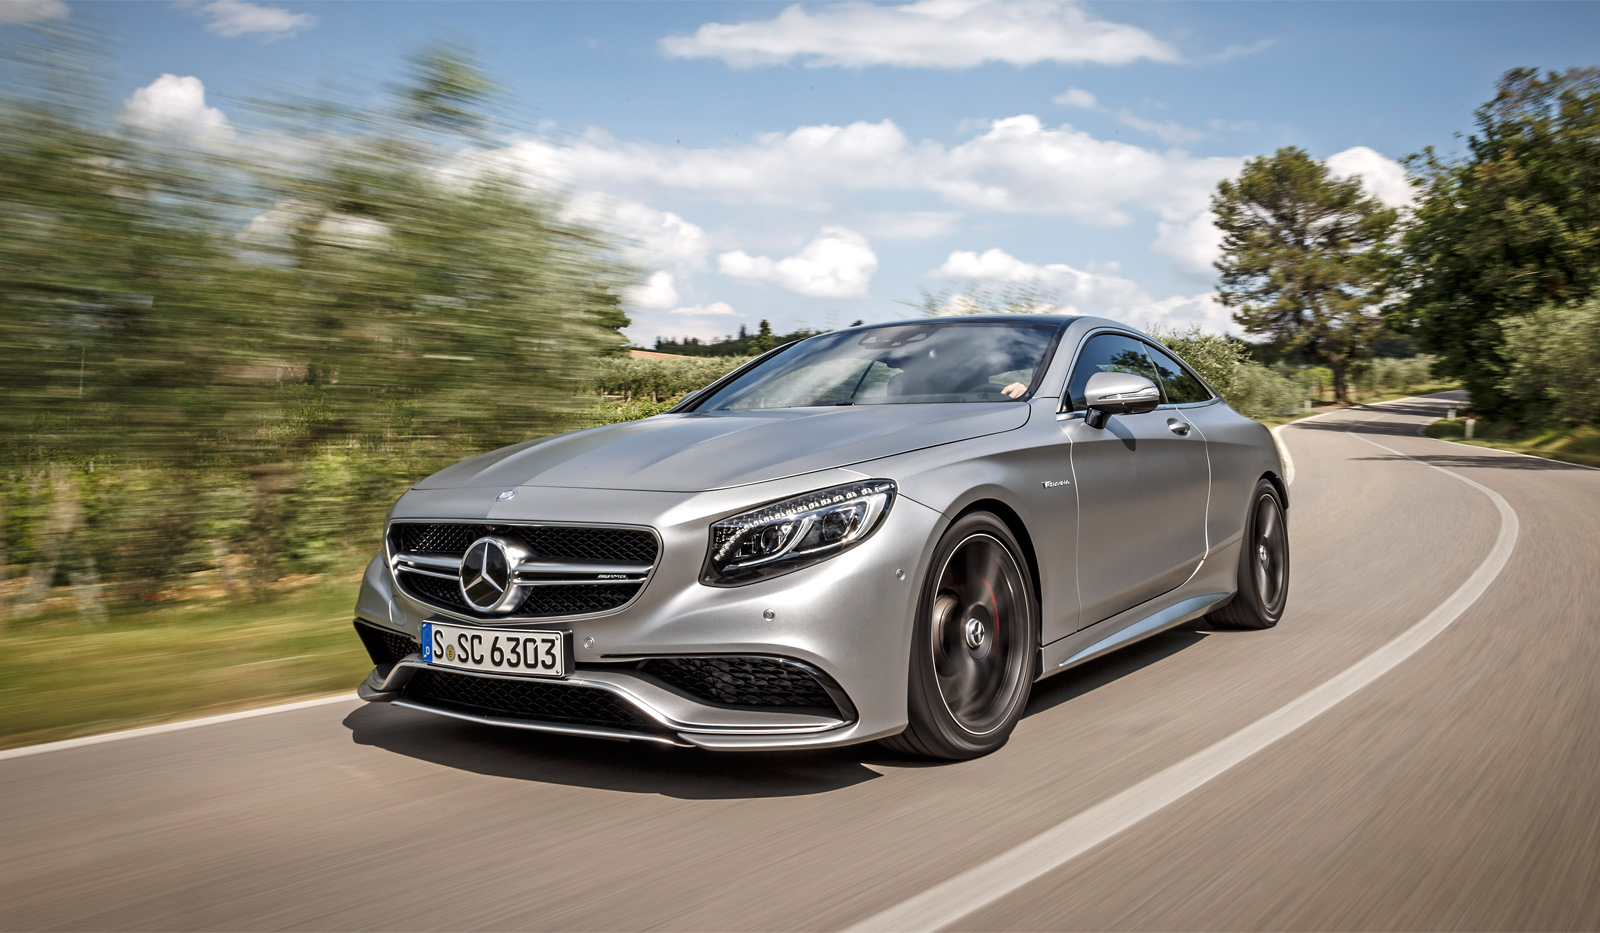 2015 mercedes benz s500 s63 amg coupe review